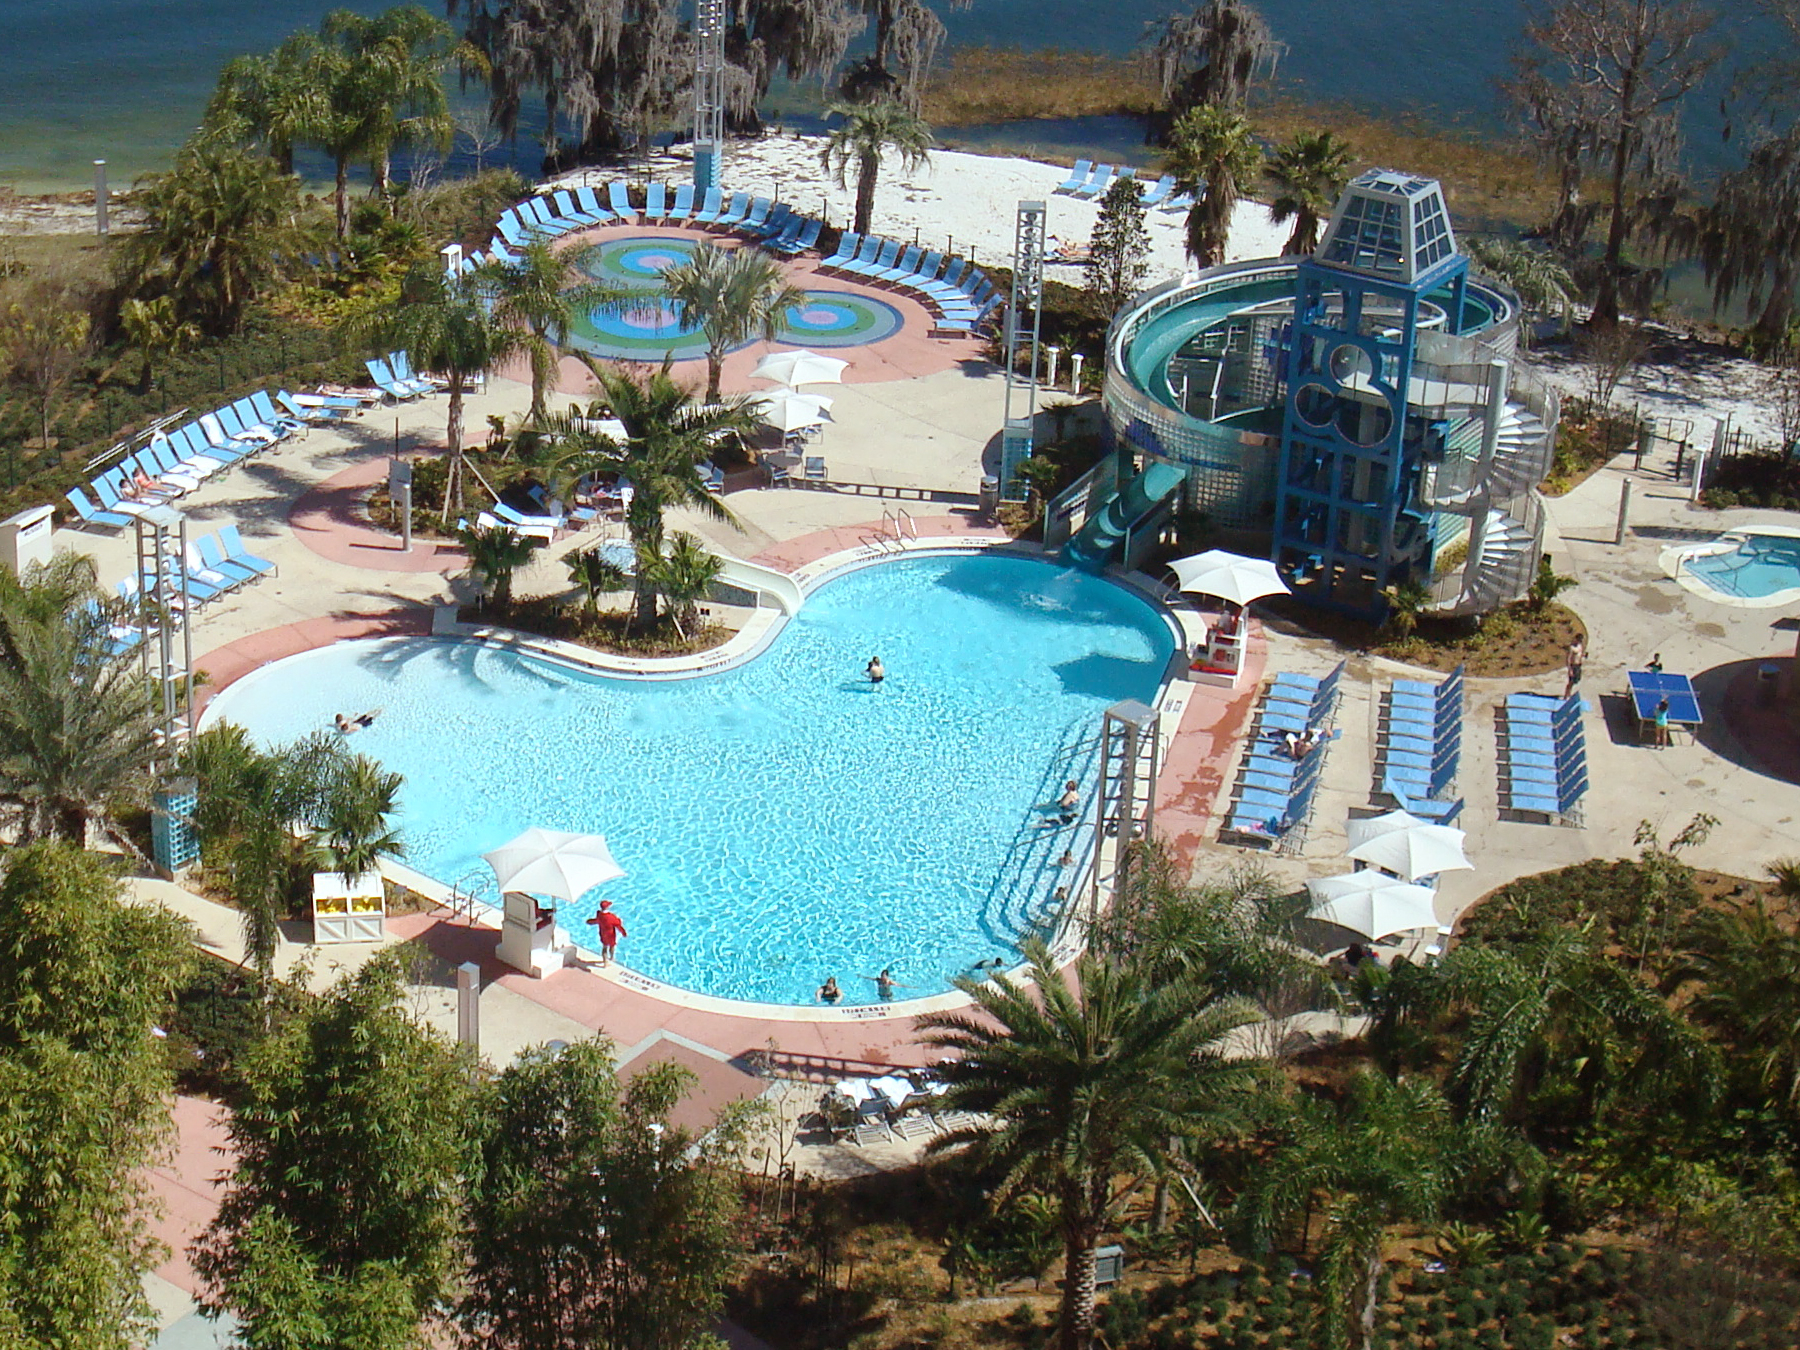 File:Contemporary blt baycove pool.jpg - Wikimedia Commons